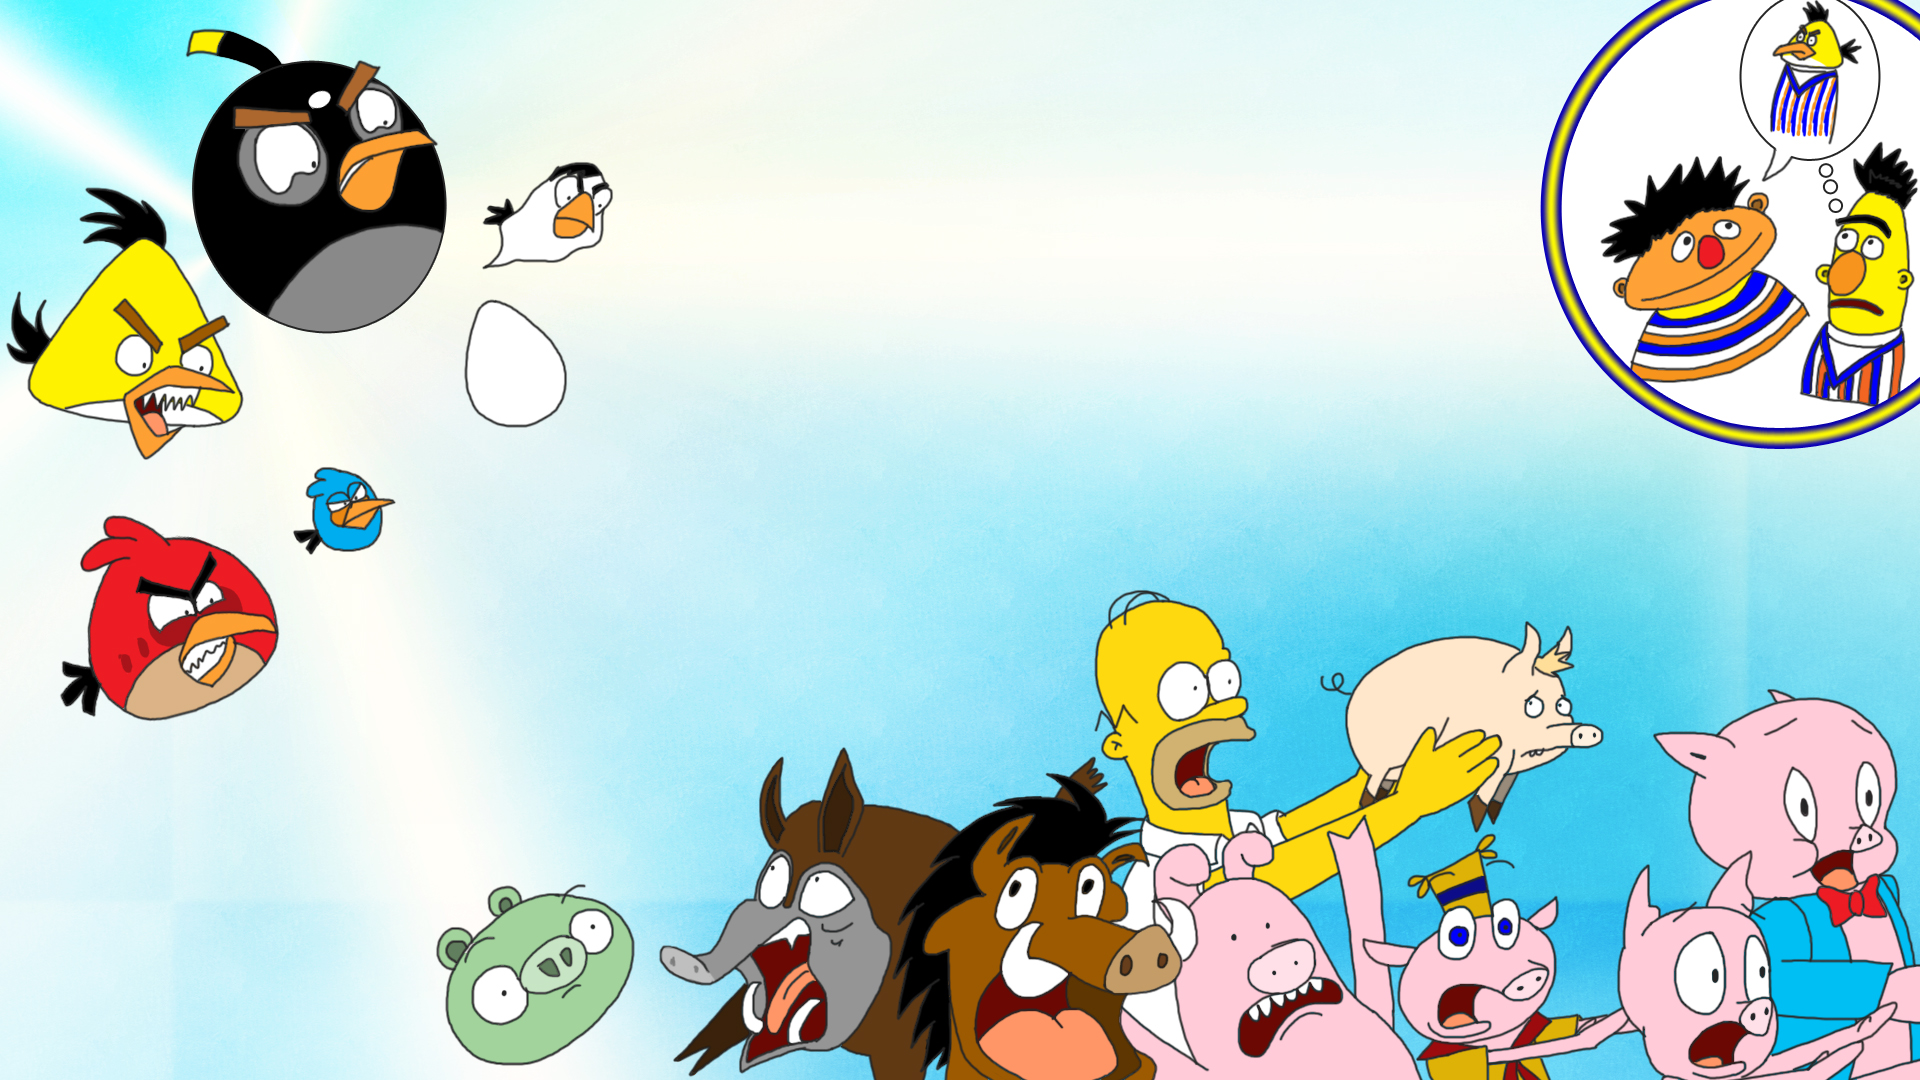 Angry Birds Vs The Pigs By Finalverdict On DeviantArt